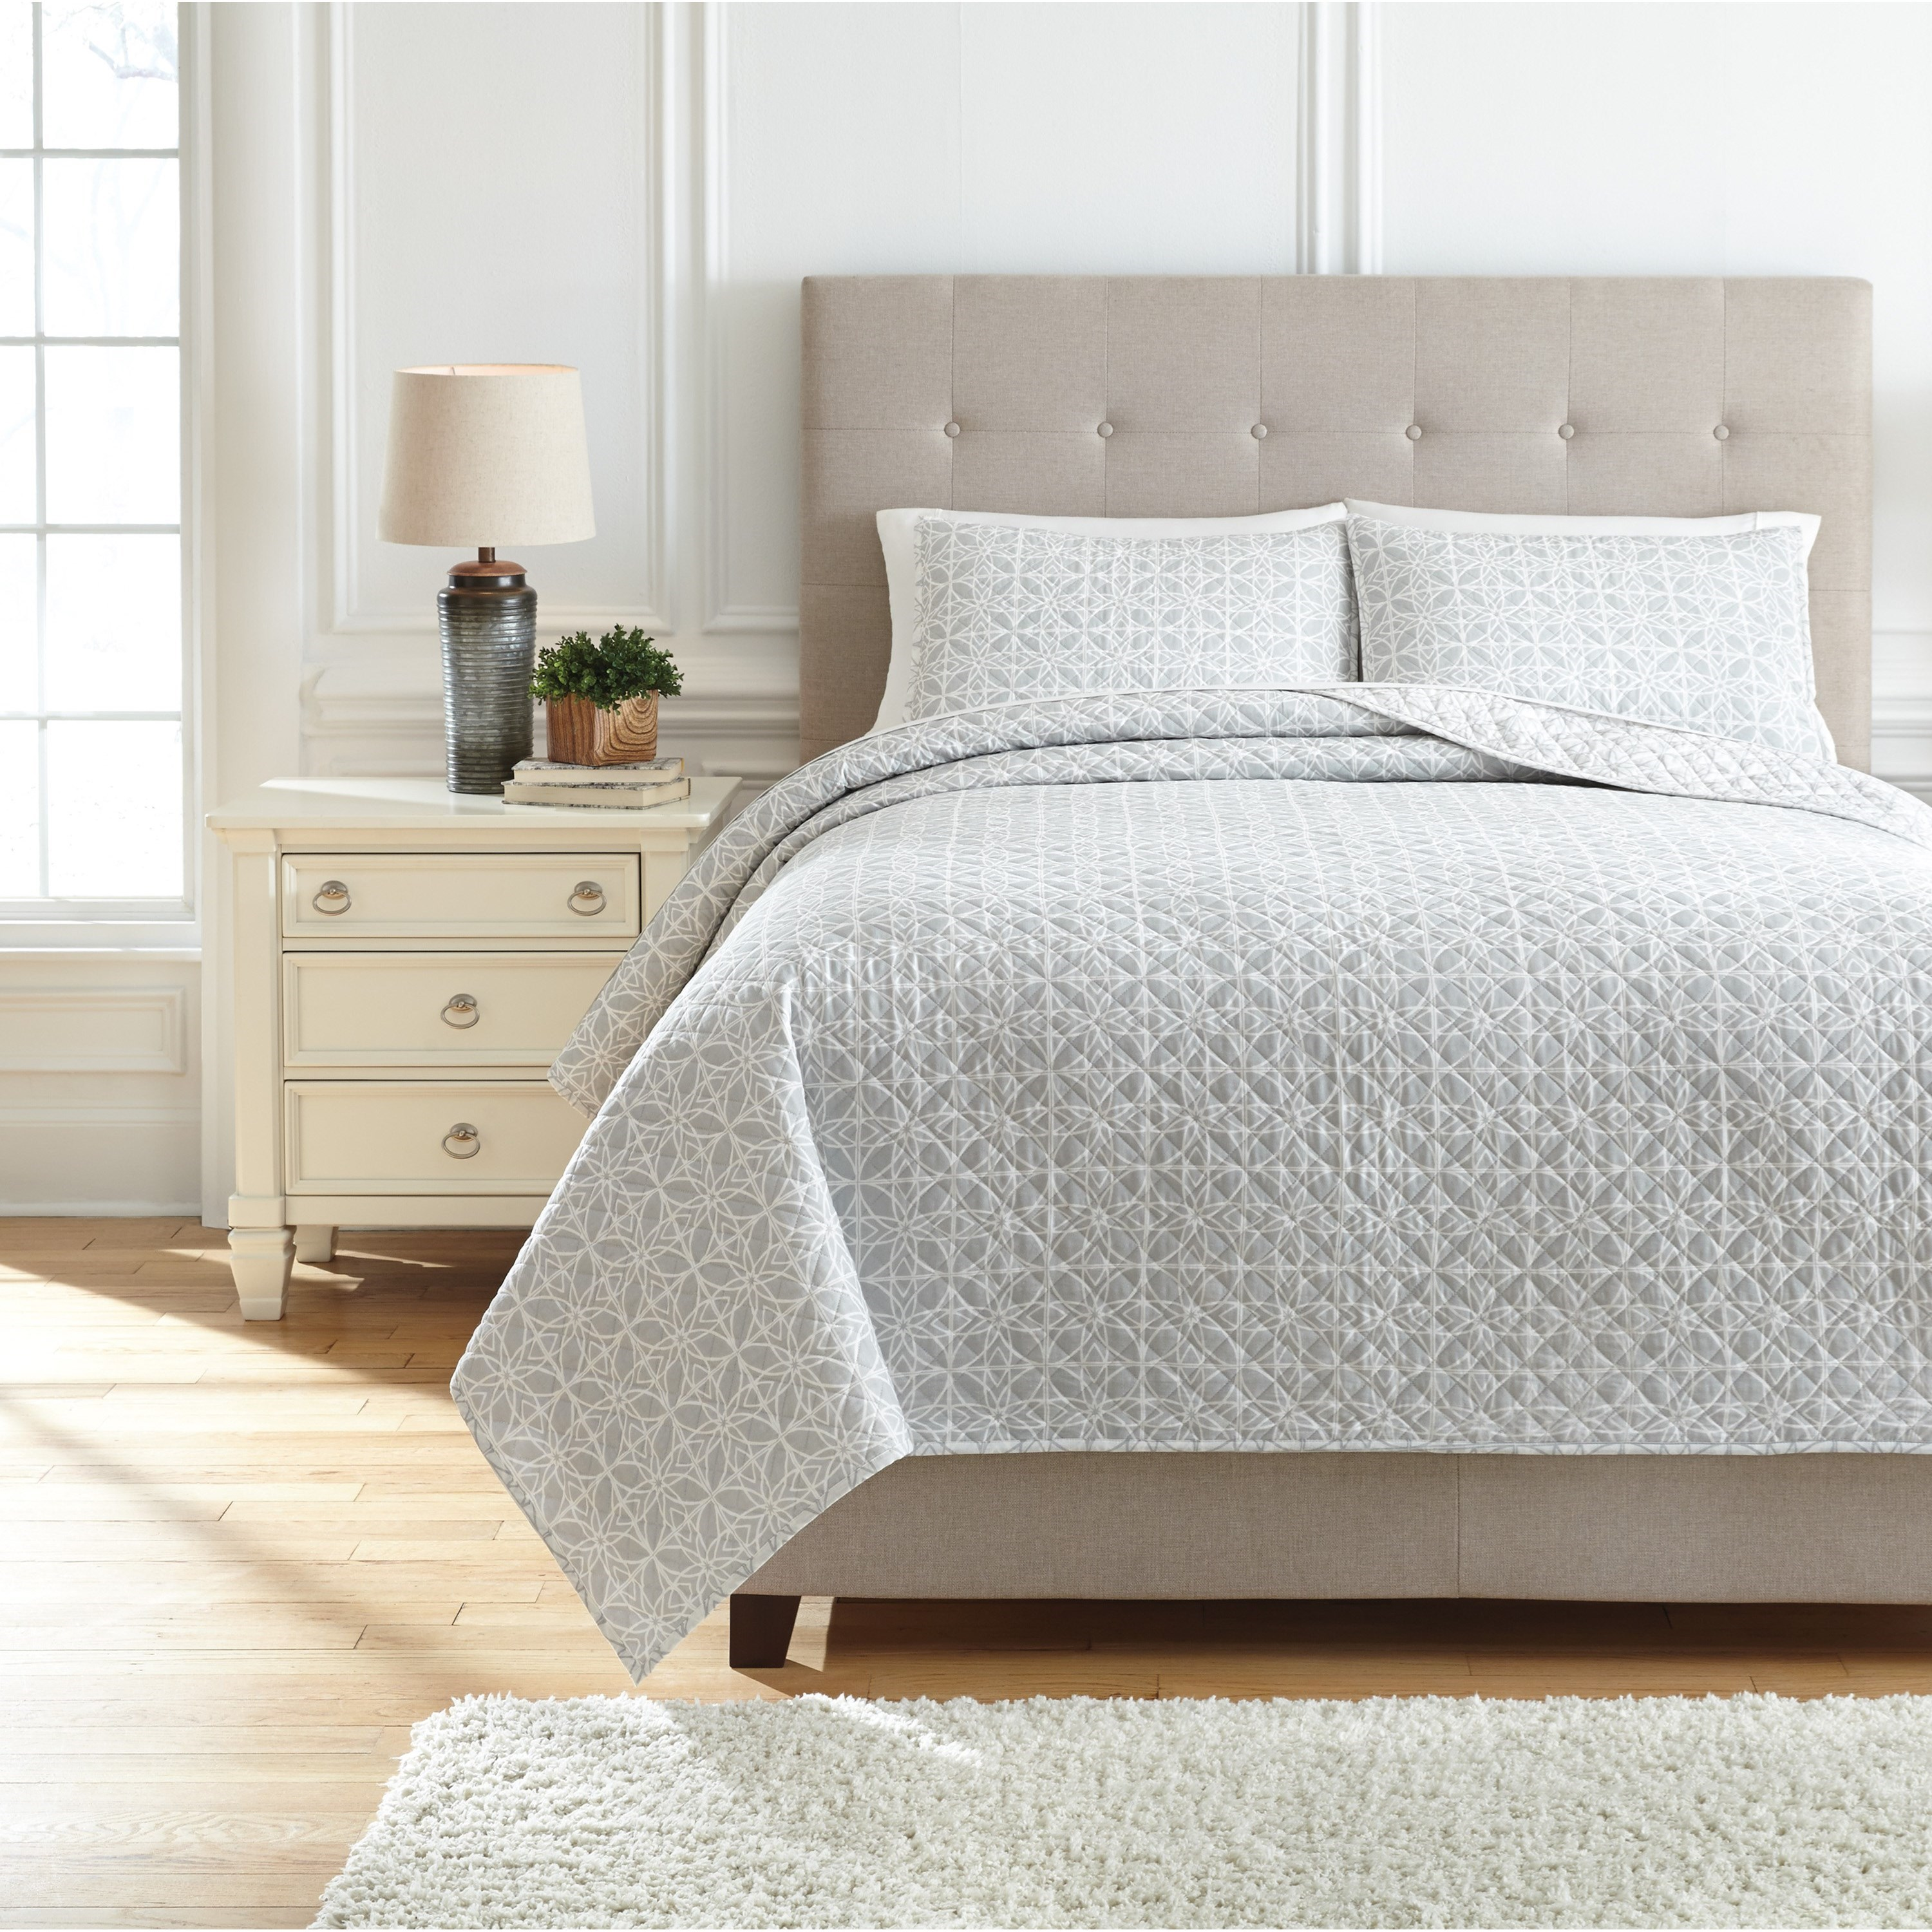 Bedding Sets King Mayda Gray/White Quilt Set by Signature Design by Ashley at Standard Furniture